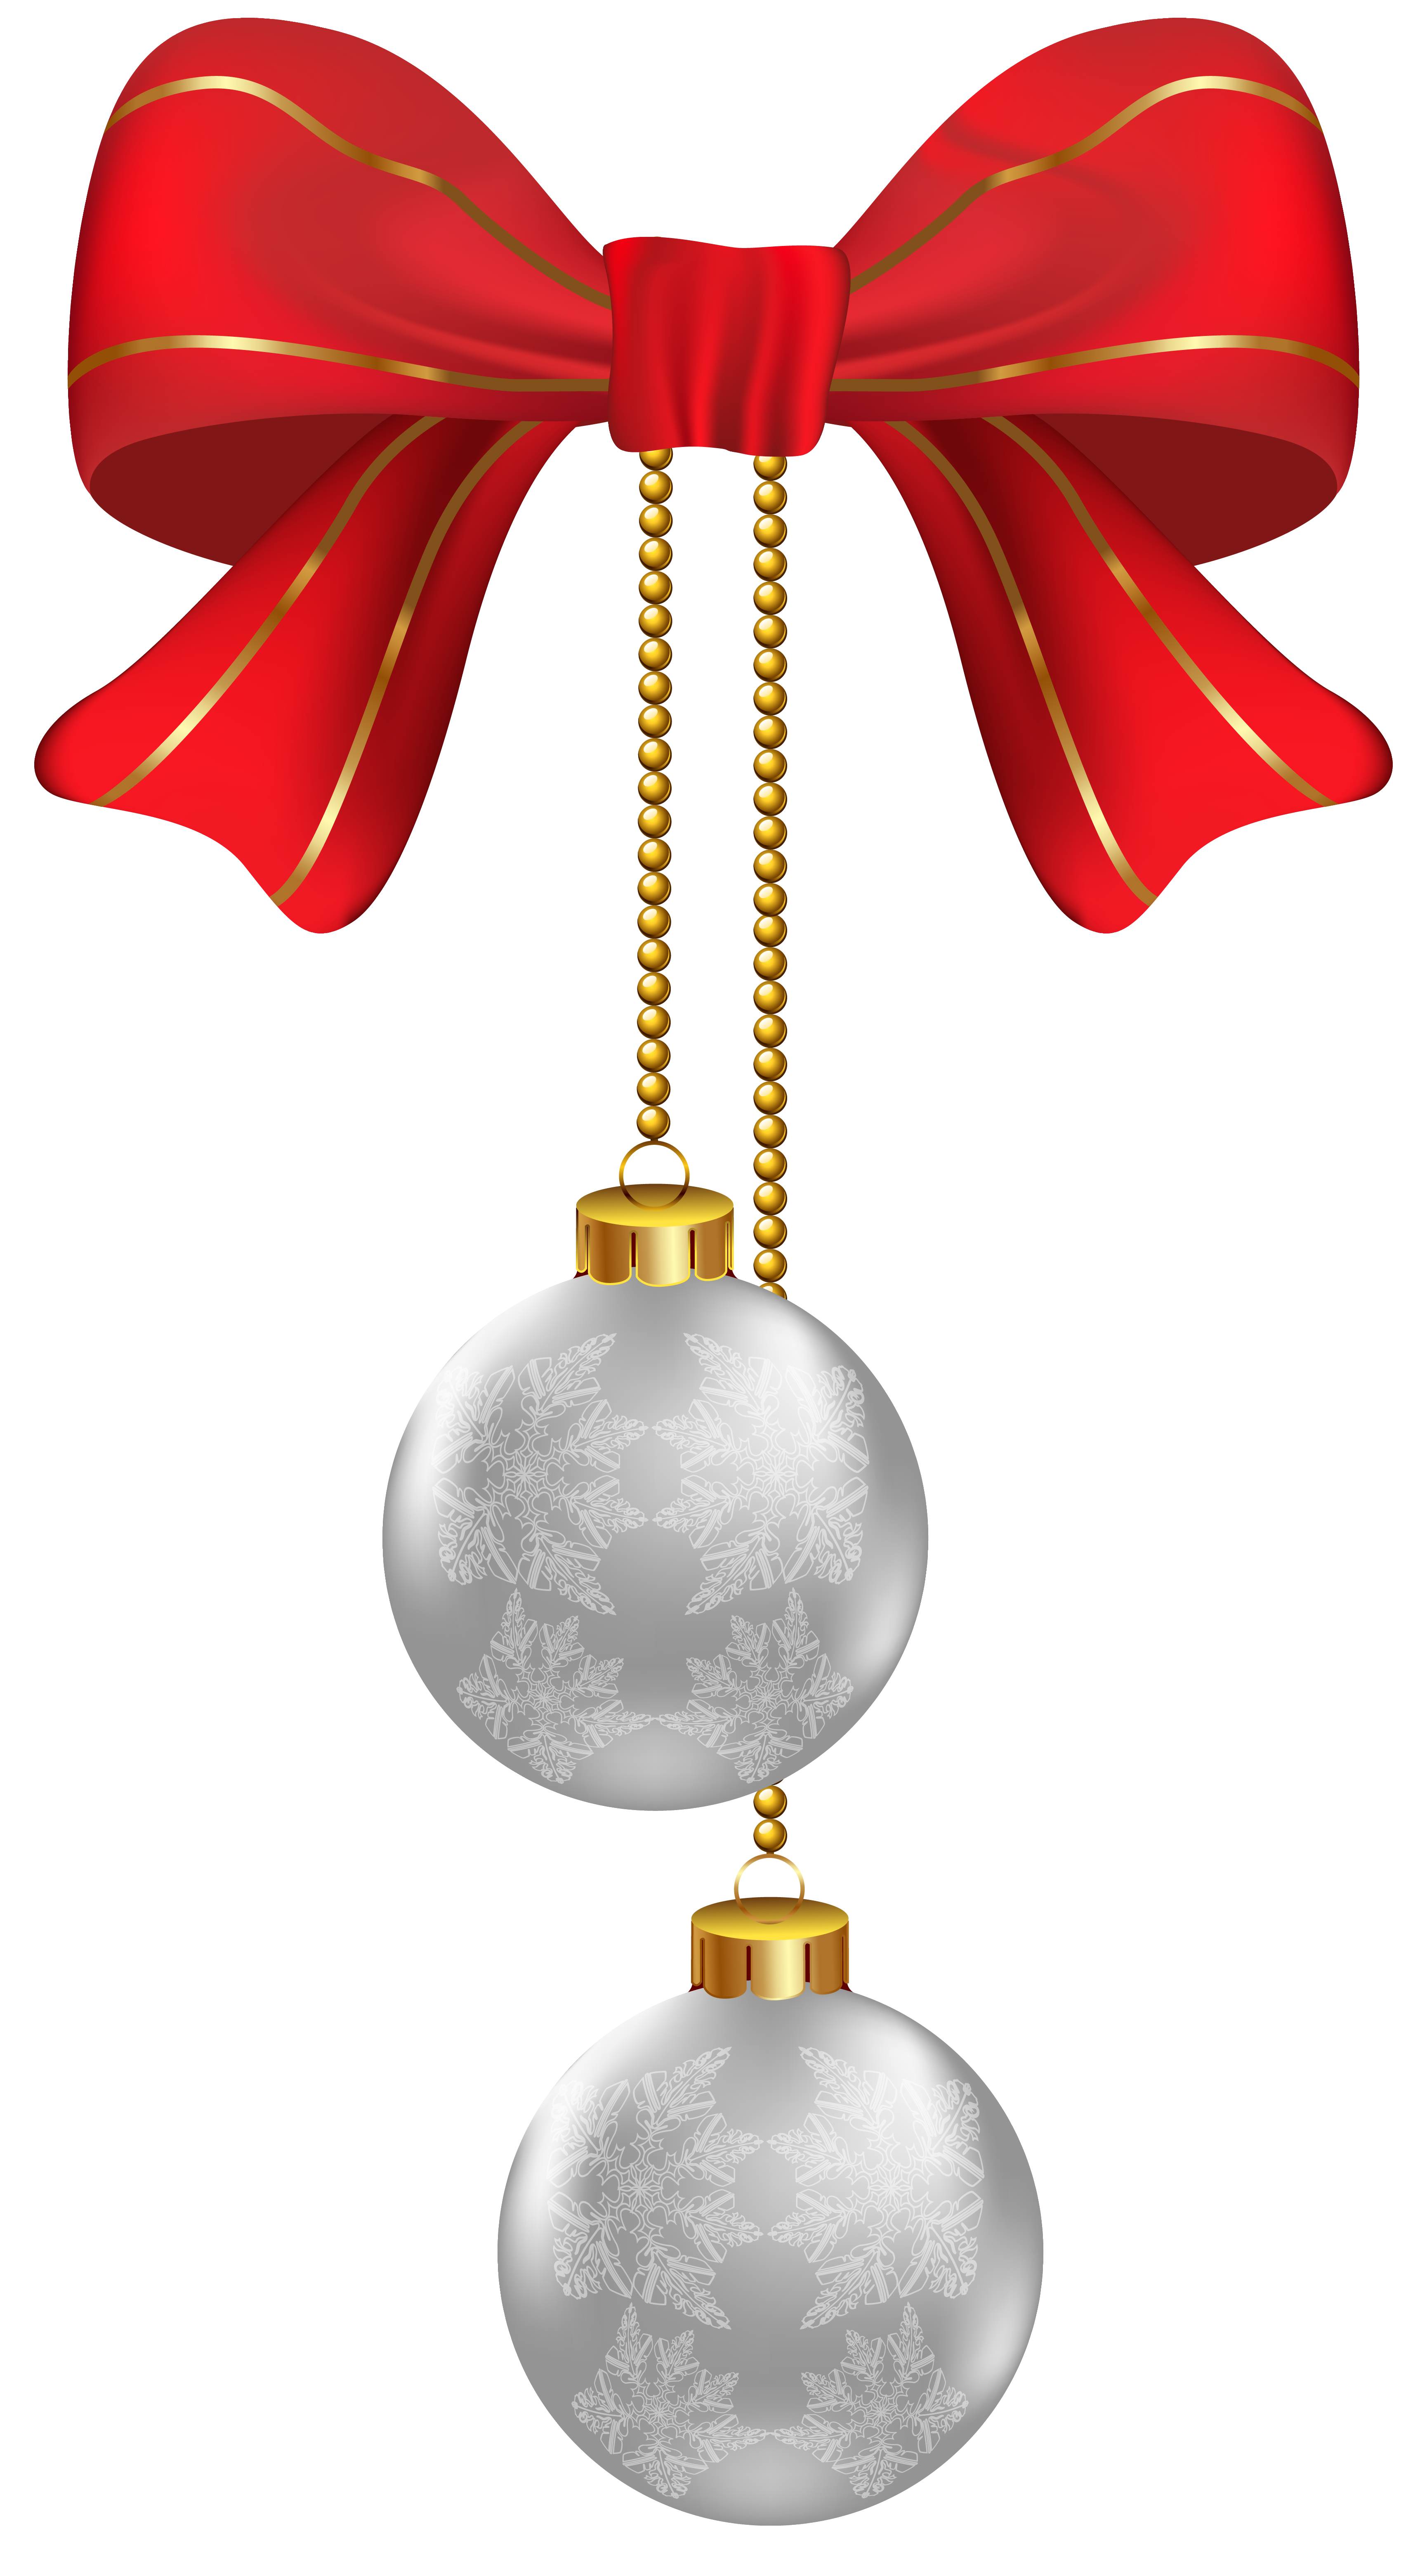 Hanging star oraments clipart download Hanging Christmas Silver Ornaments PNG Clipart Image   Gallery ... download